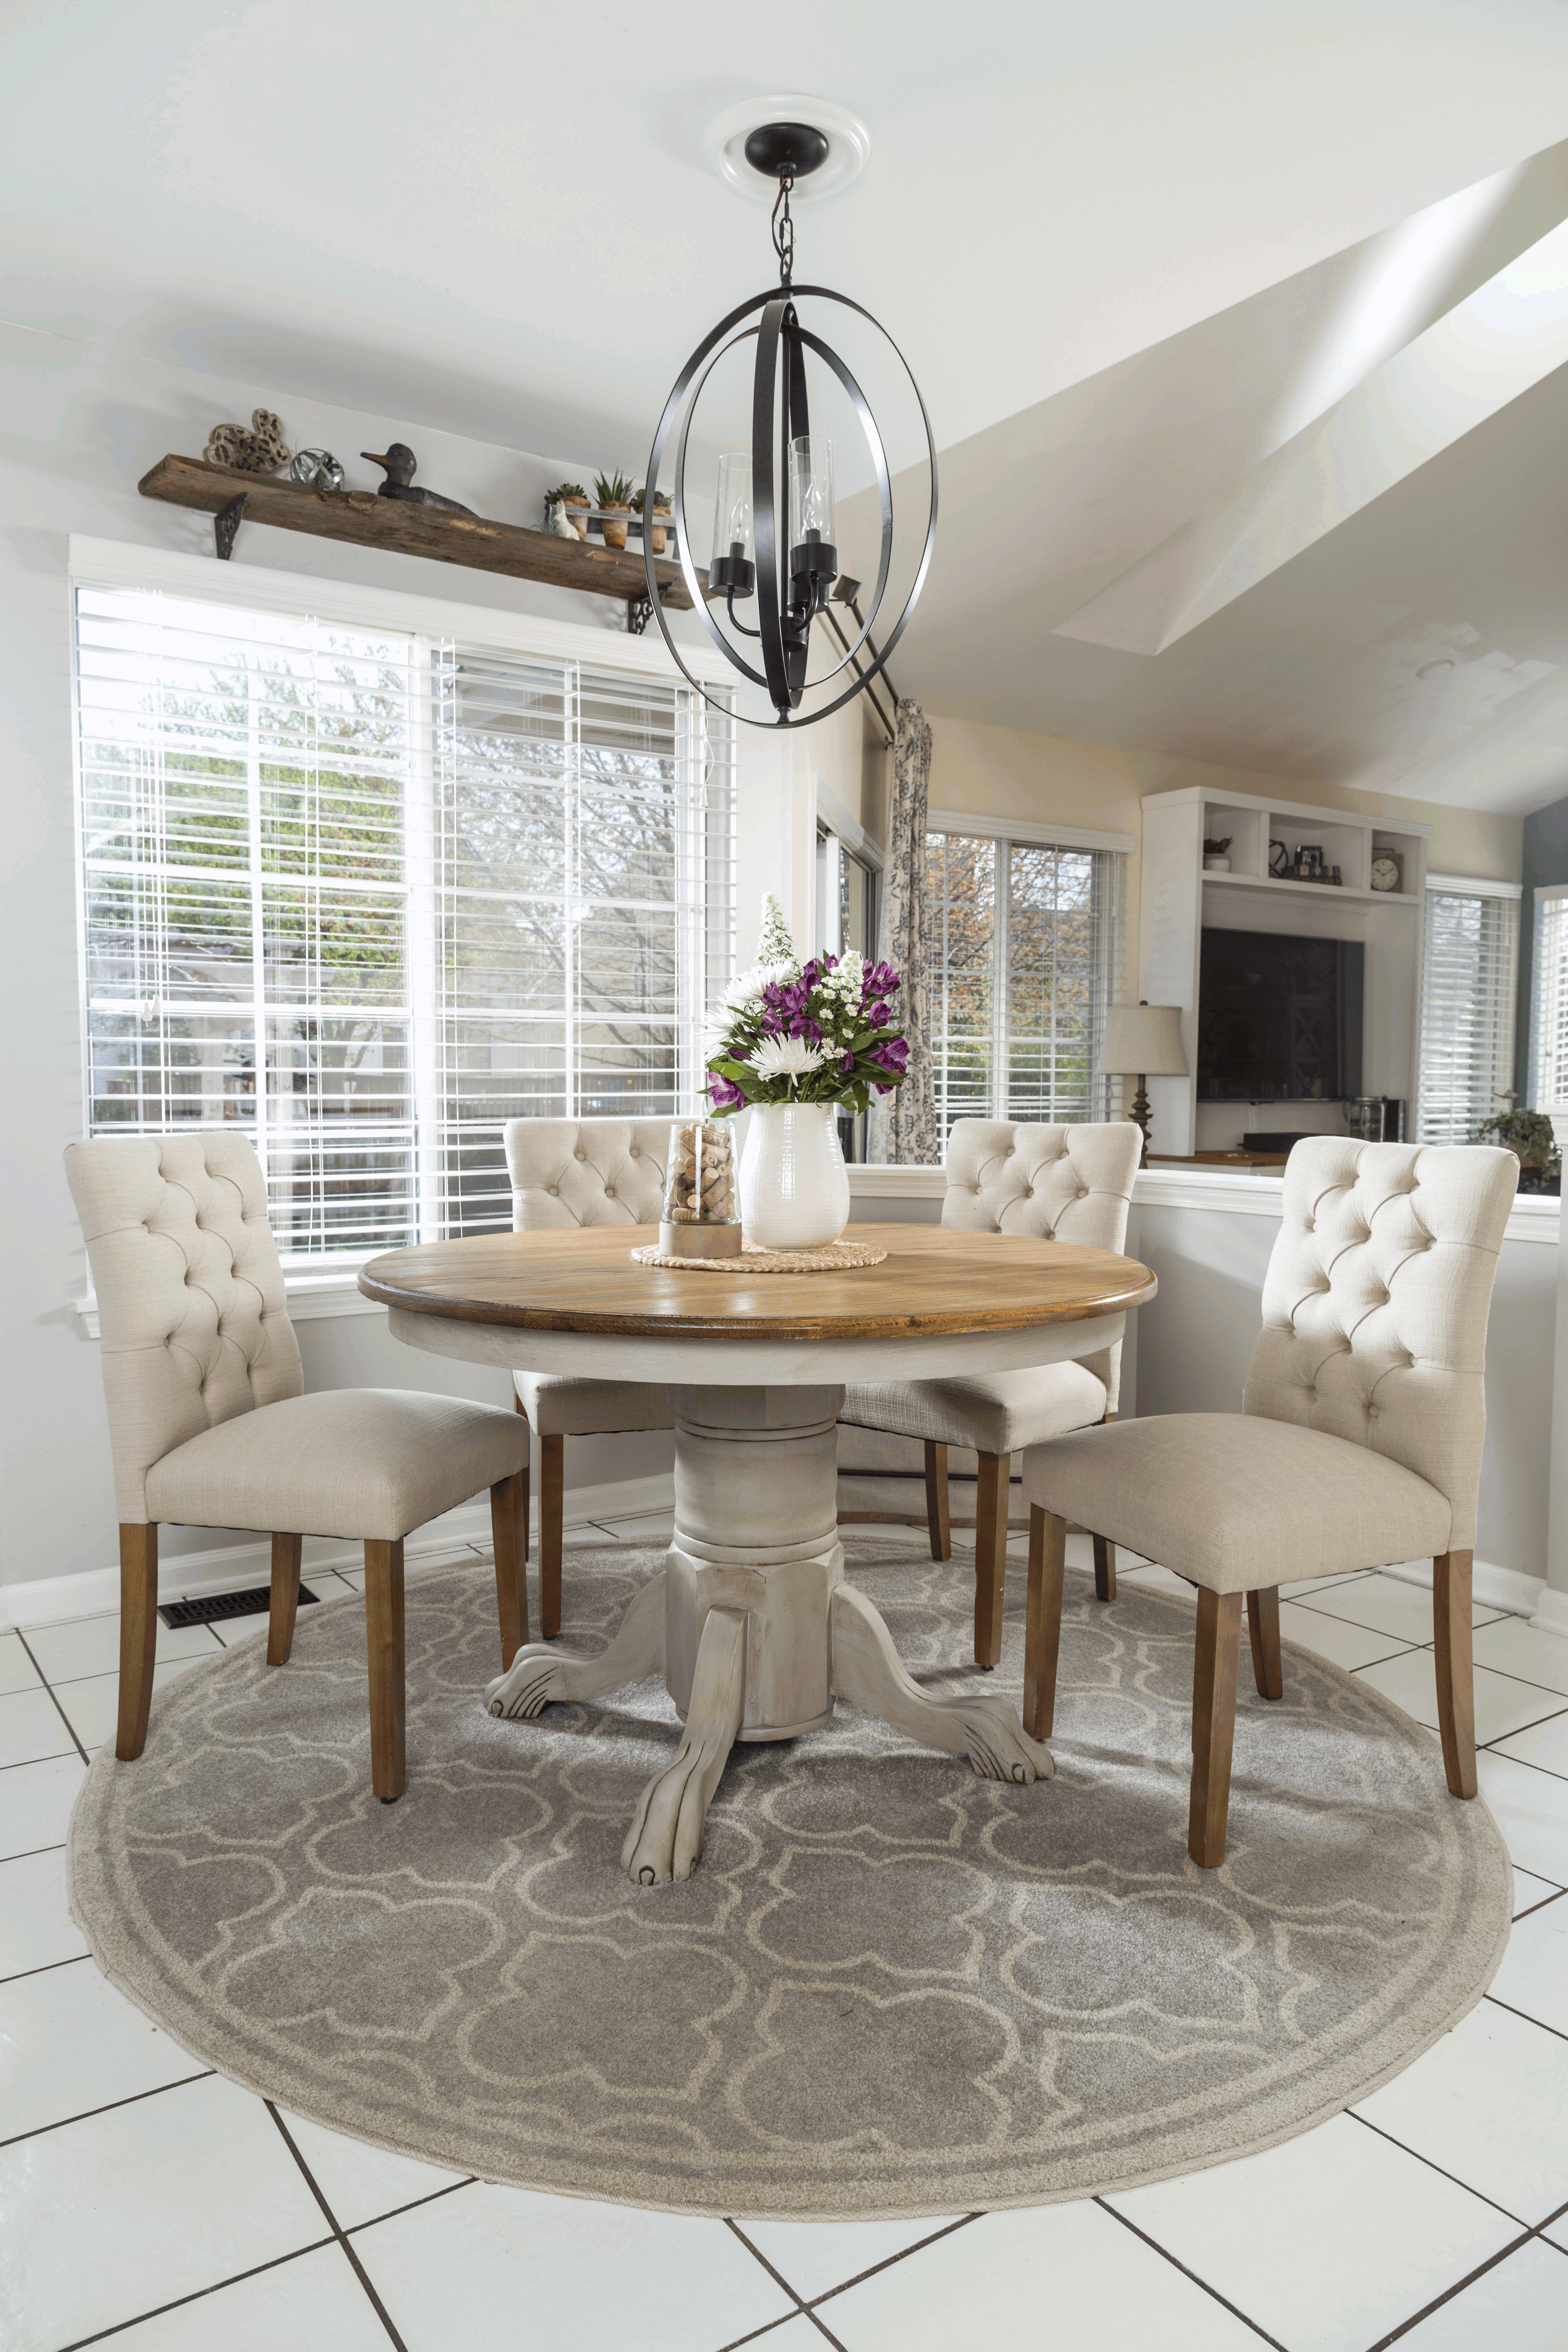 From drab to fab! This ordinary dining table gets an